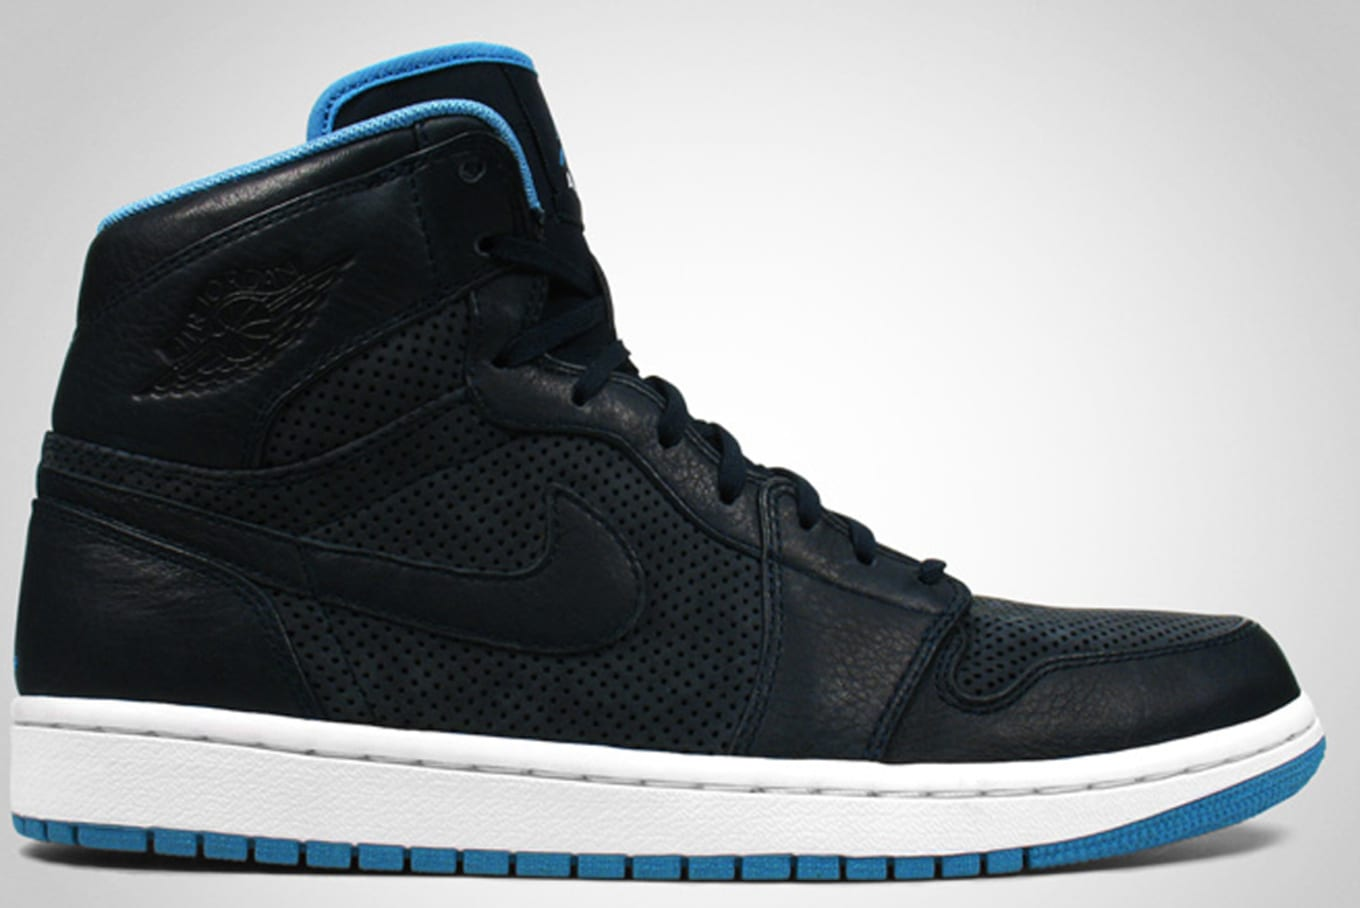 low priced c2a82 e9887 Air Jordan 1 High Retro EPM Premier Dark Obsidian Cerulean White